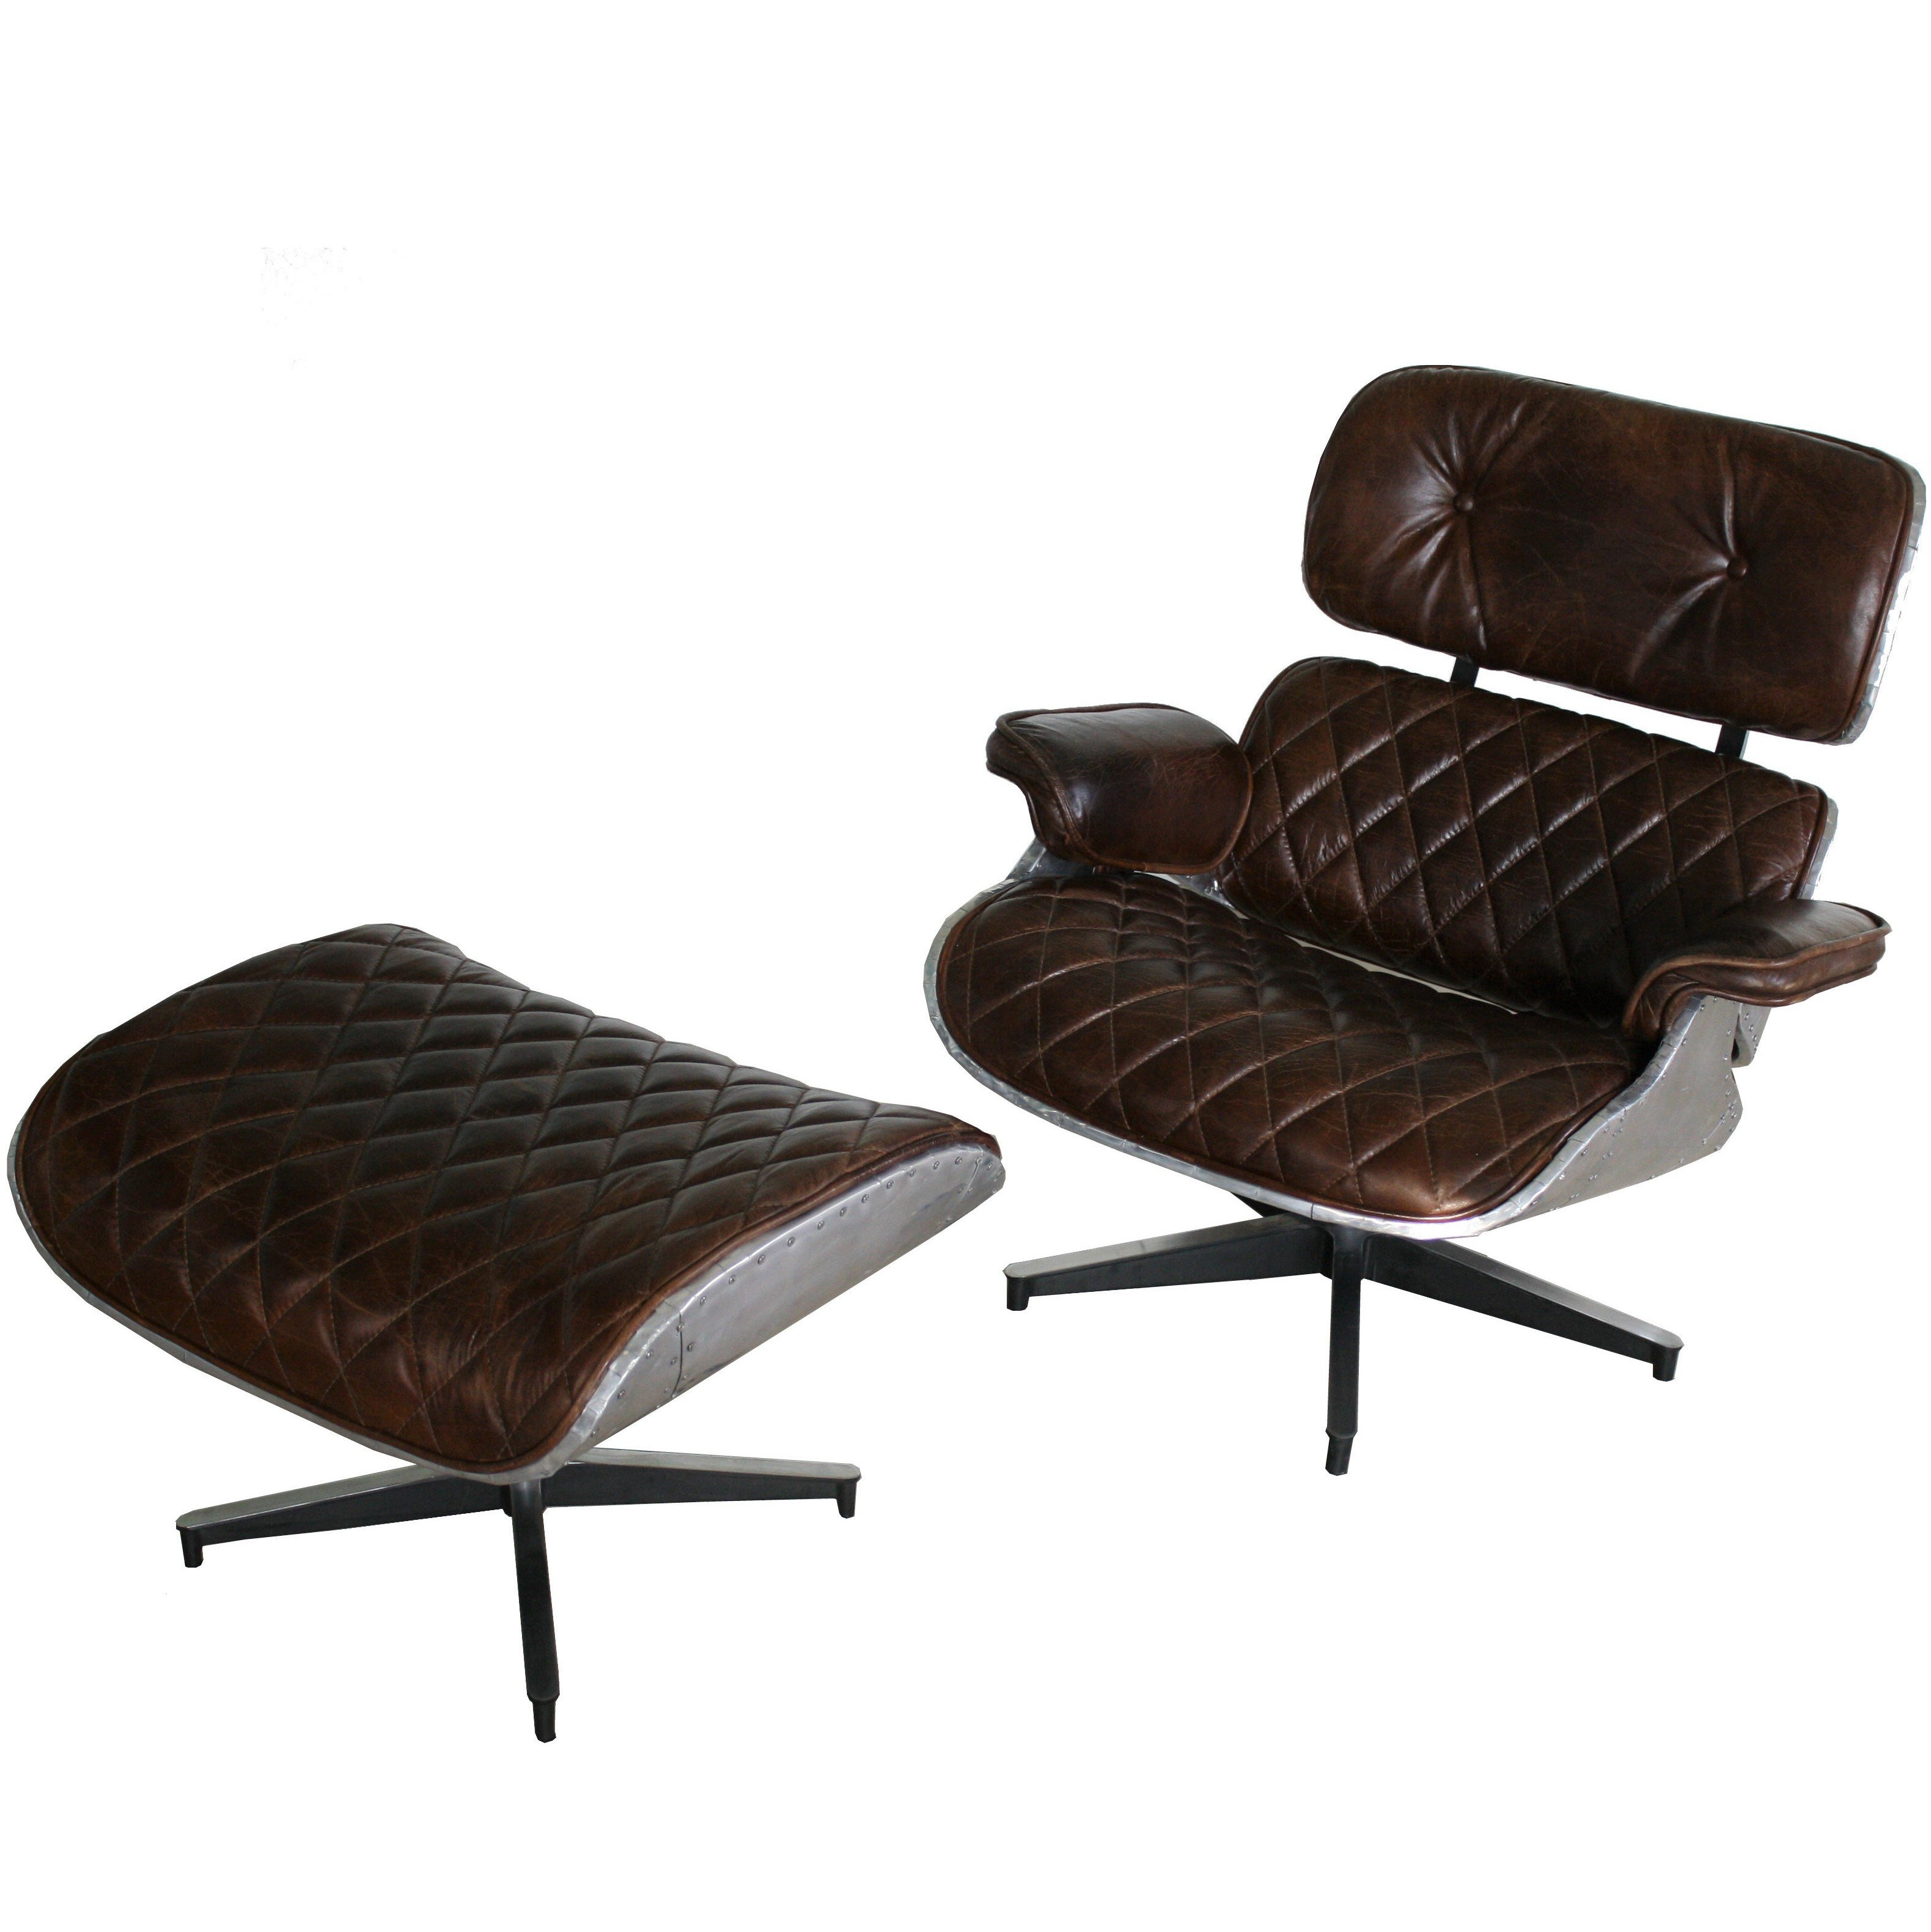 Unique Lounge Chair Unique Eames Lounge Chair And Ottoman Aviator Style